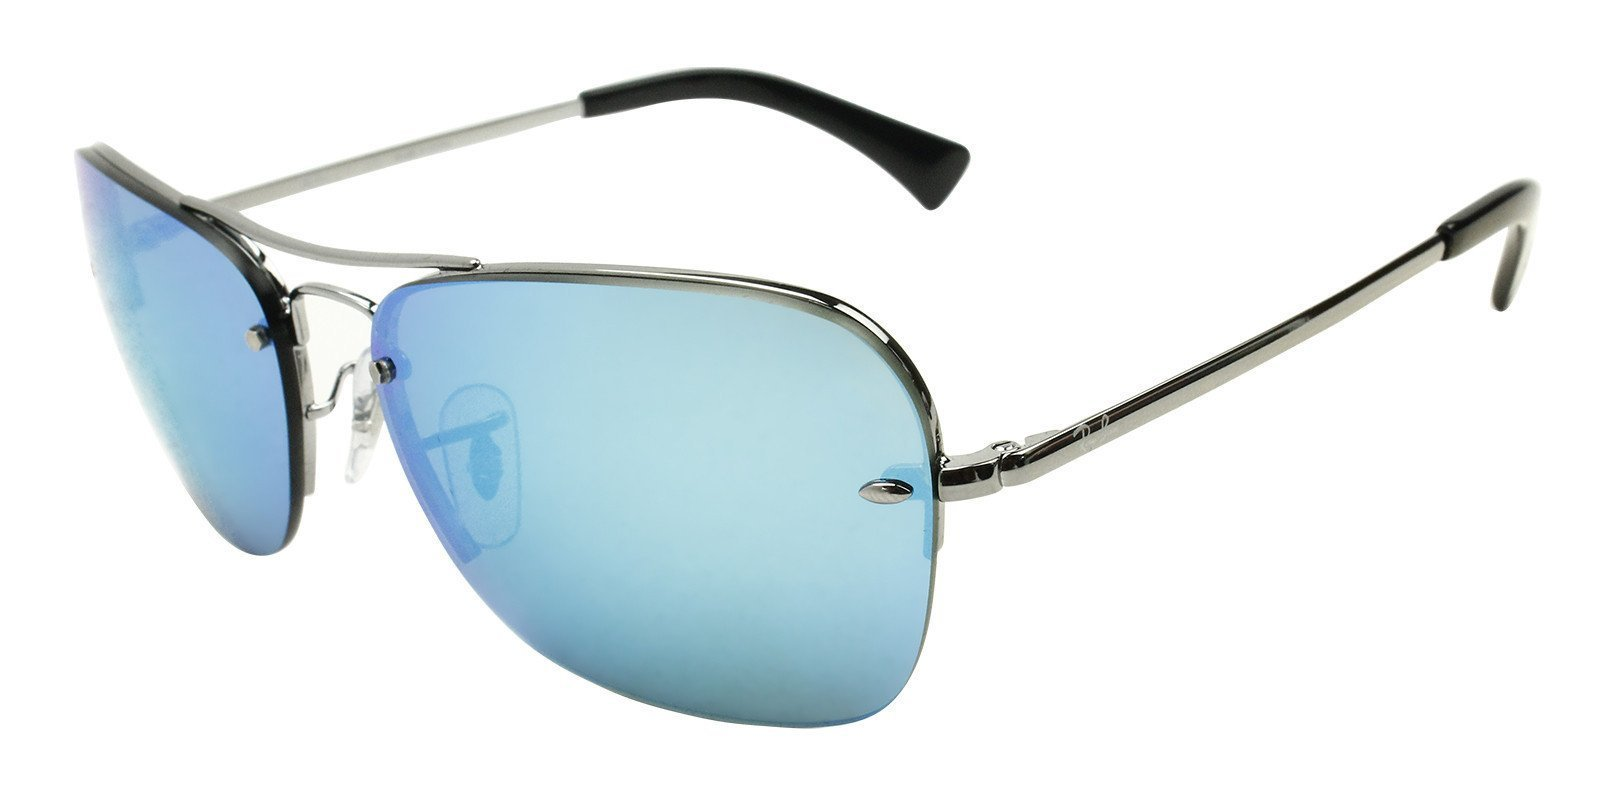 ece1d3aad1 Authentic Ray-Ban Aviator RB 3541 004 55 61mm Gunmetal   Blue Mirror ...